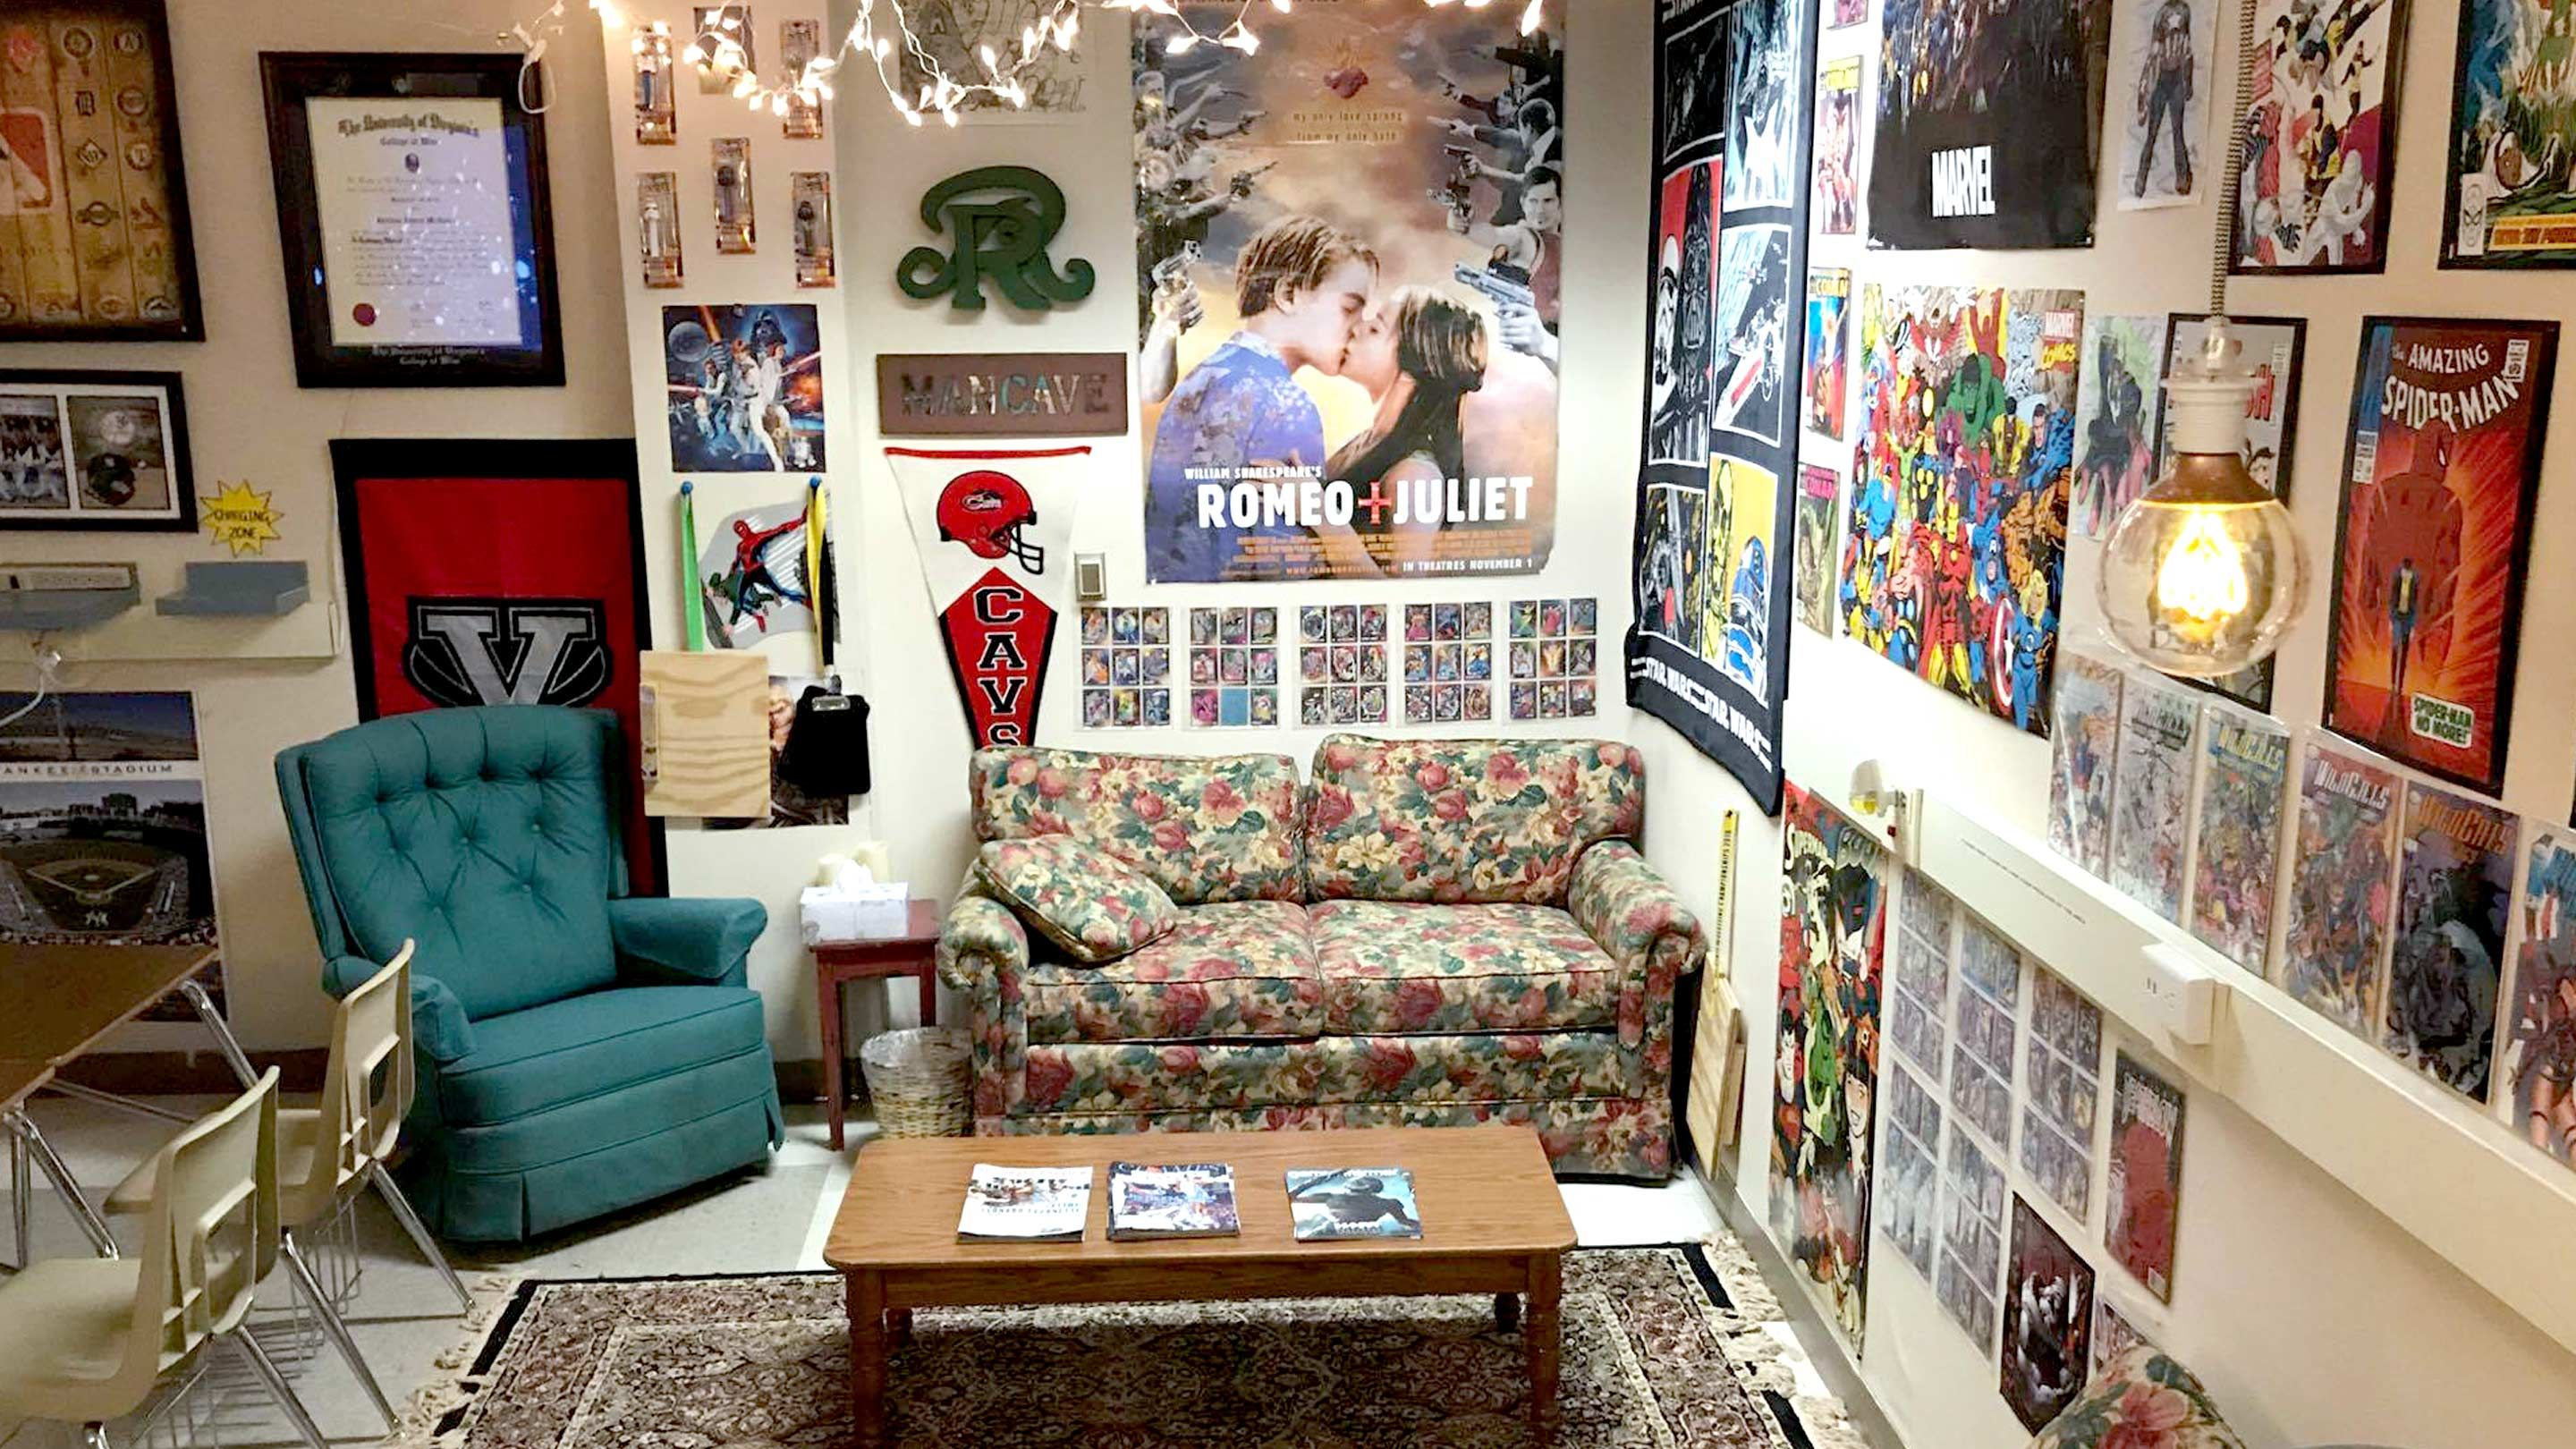 Big Couch Small Door High School Flexible Seating Done Right Edutopia